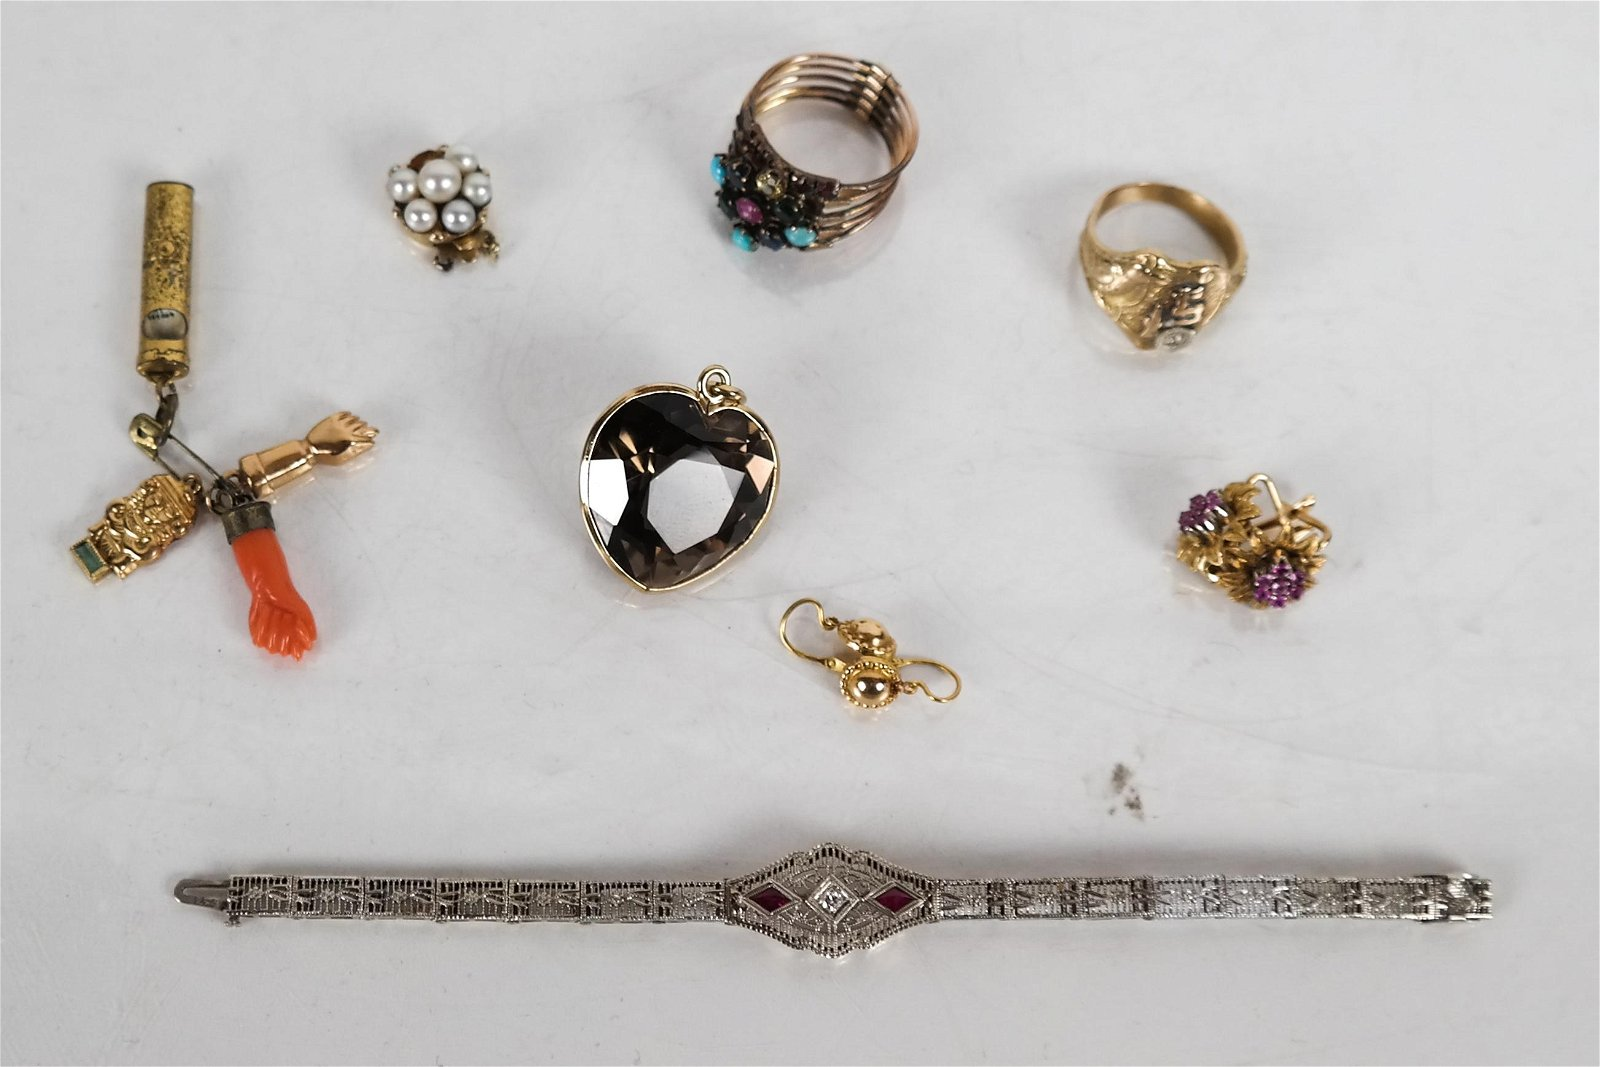 8 Pieces14K and 10K Gold Jewelry 28 DWT